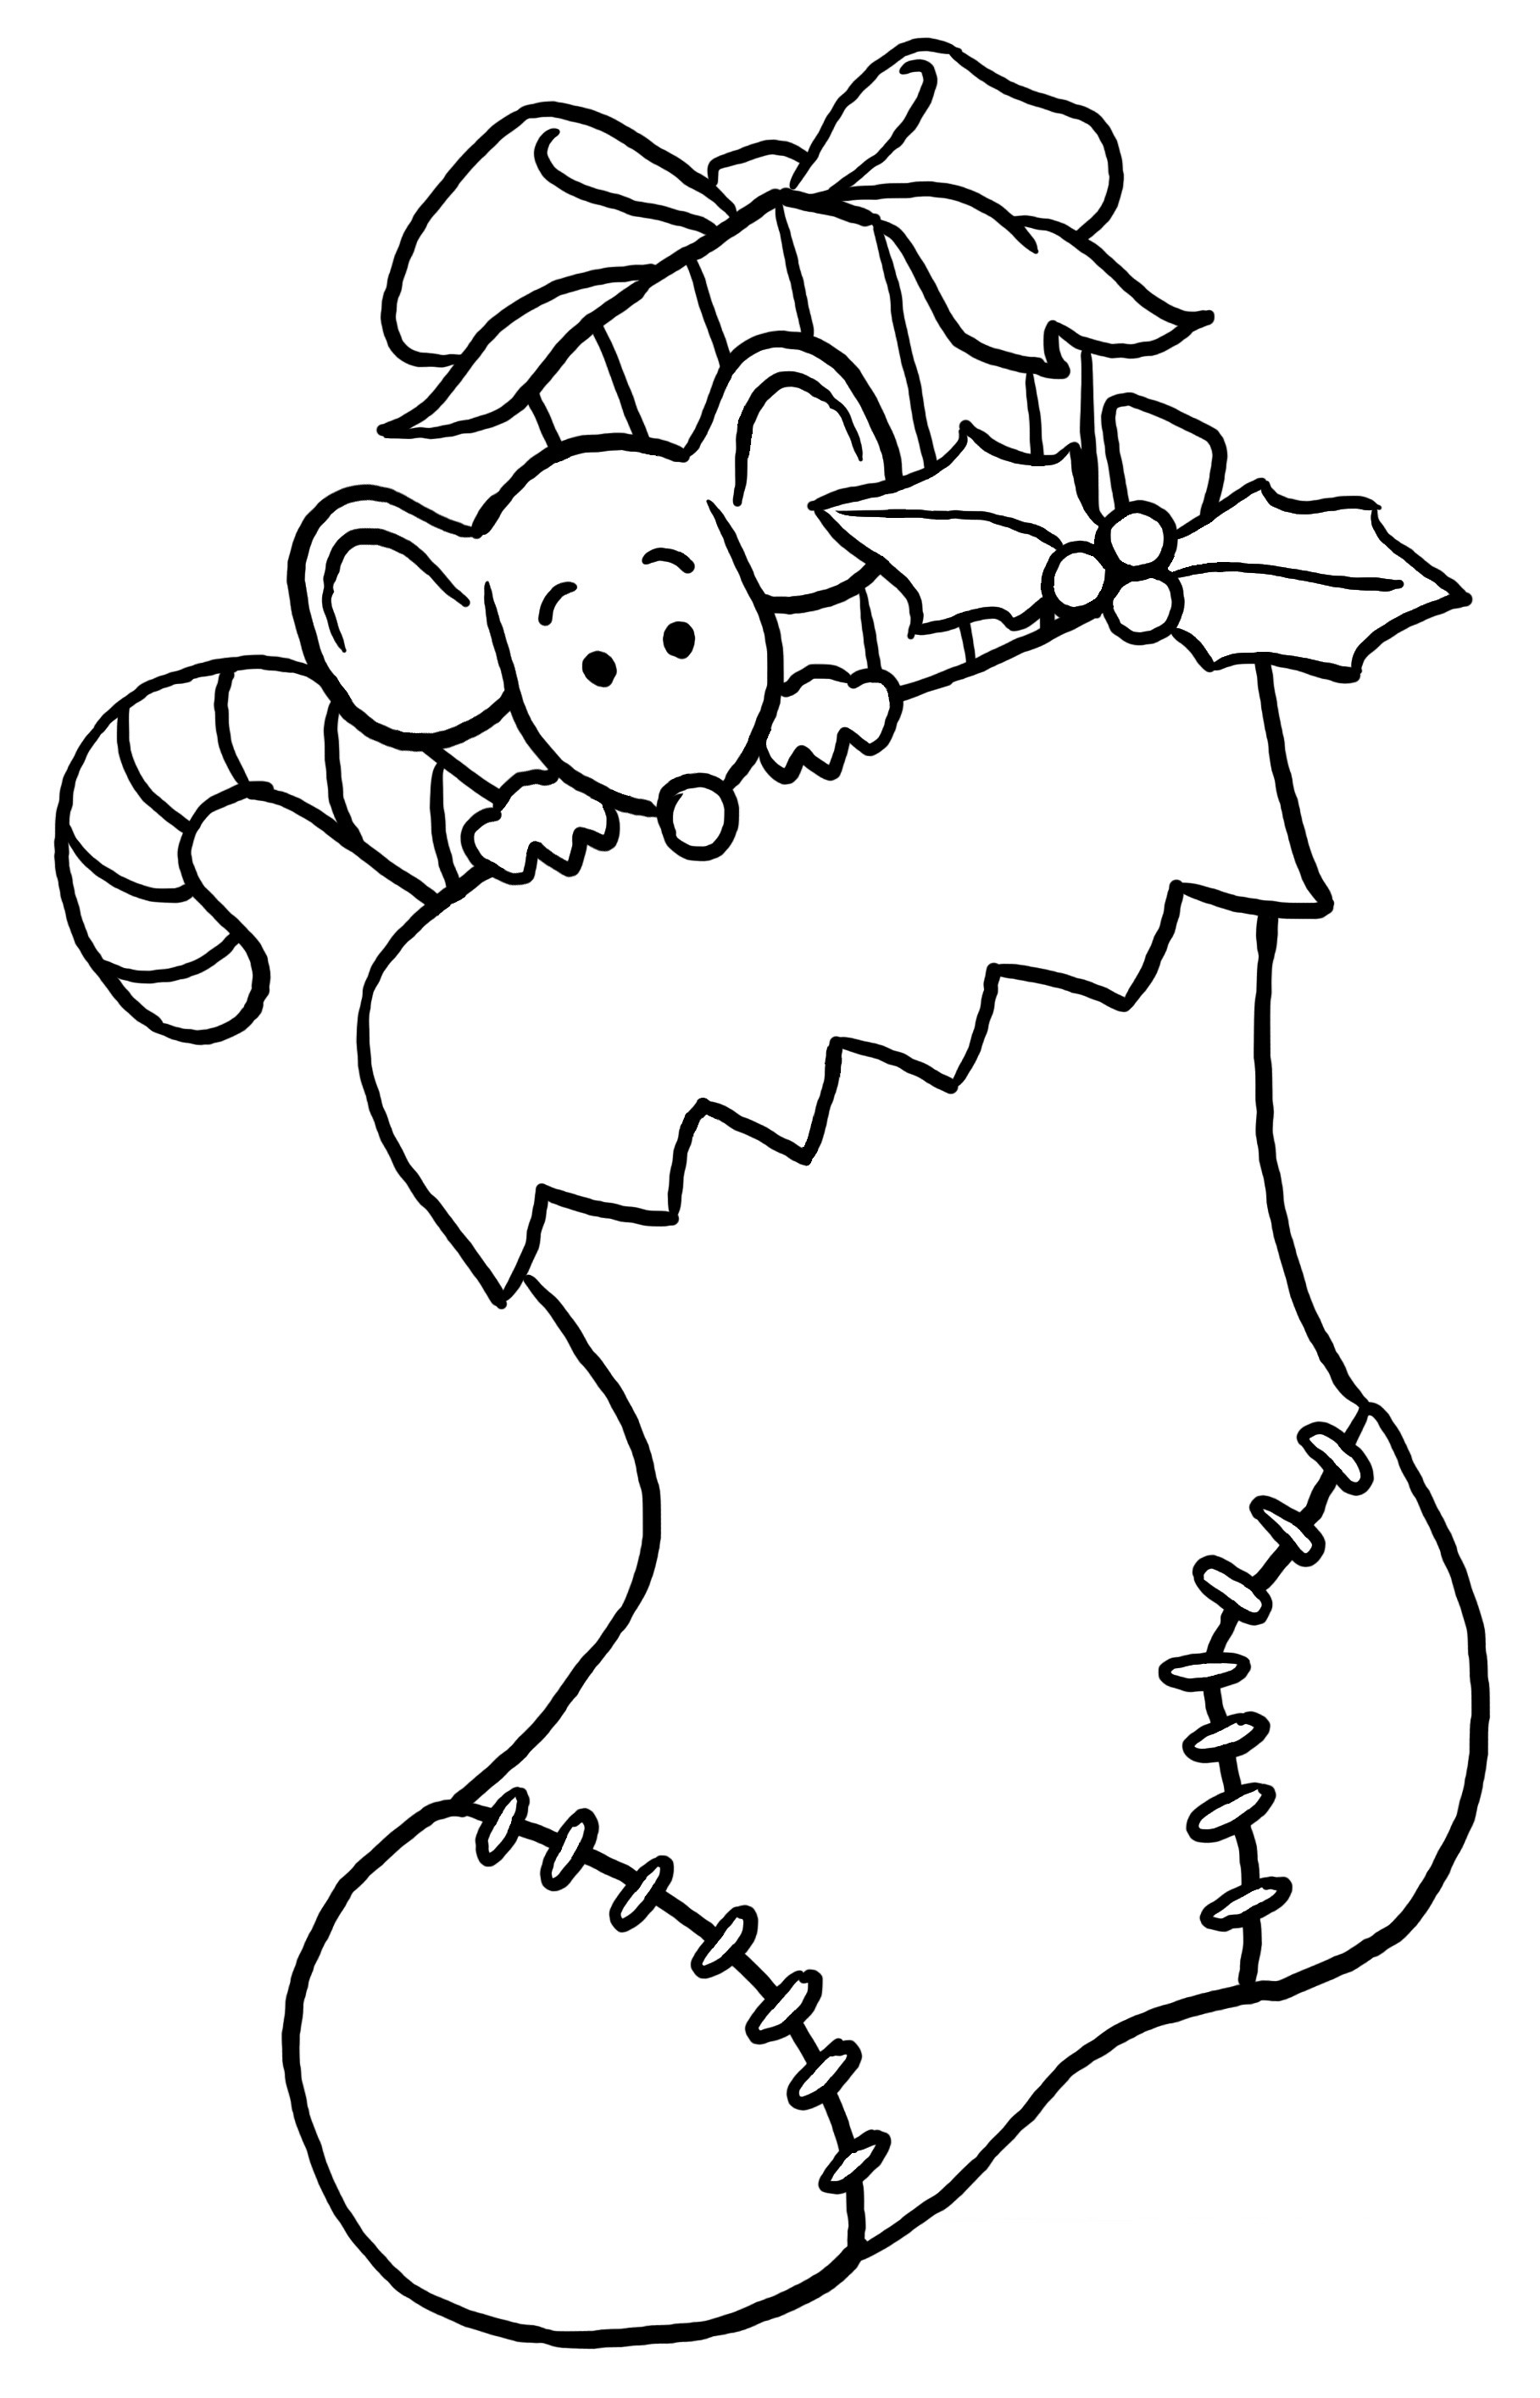 Christmas Coloring Pages For Free To Print With Spongebob Printable Archives Codraw